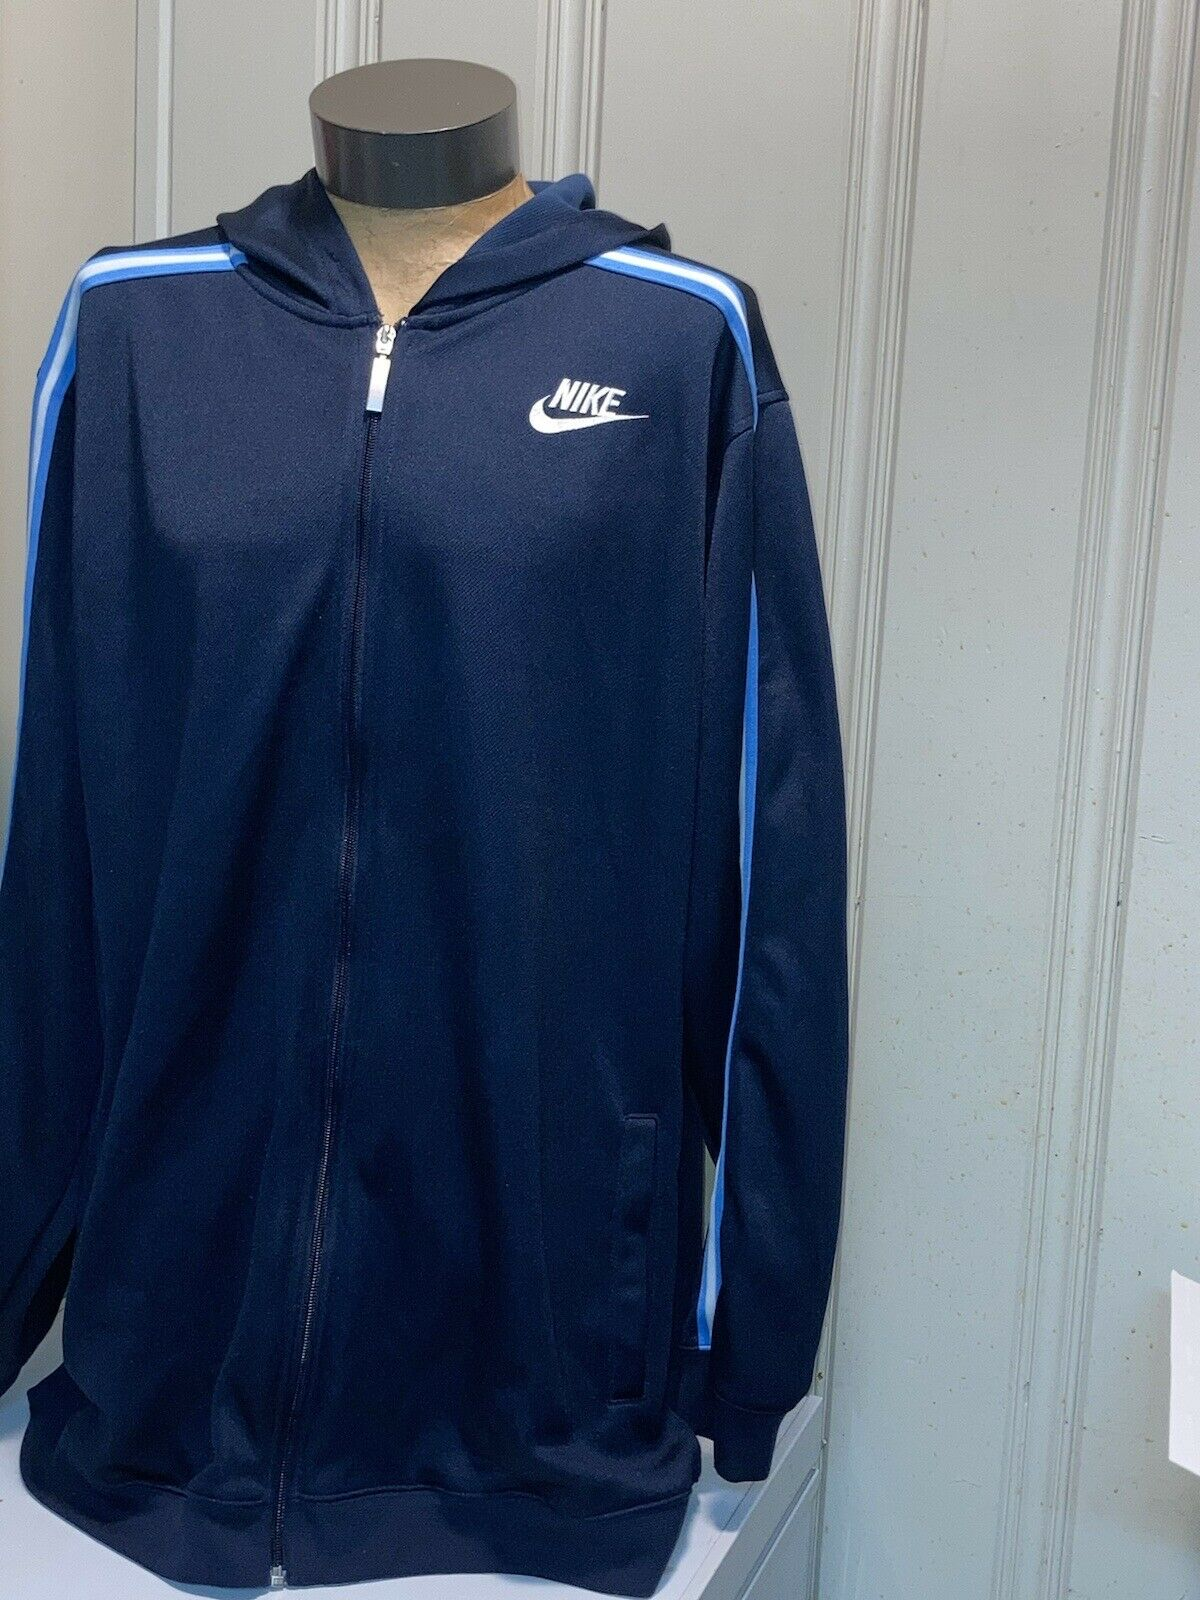 vintage 90s blue and white Nike swoosh hoodie XL … - image 4